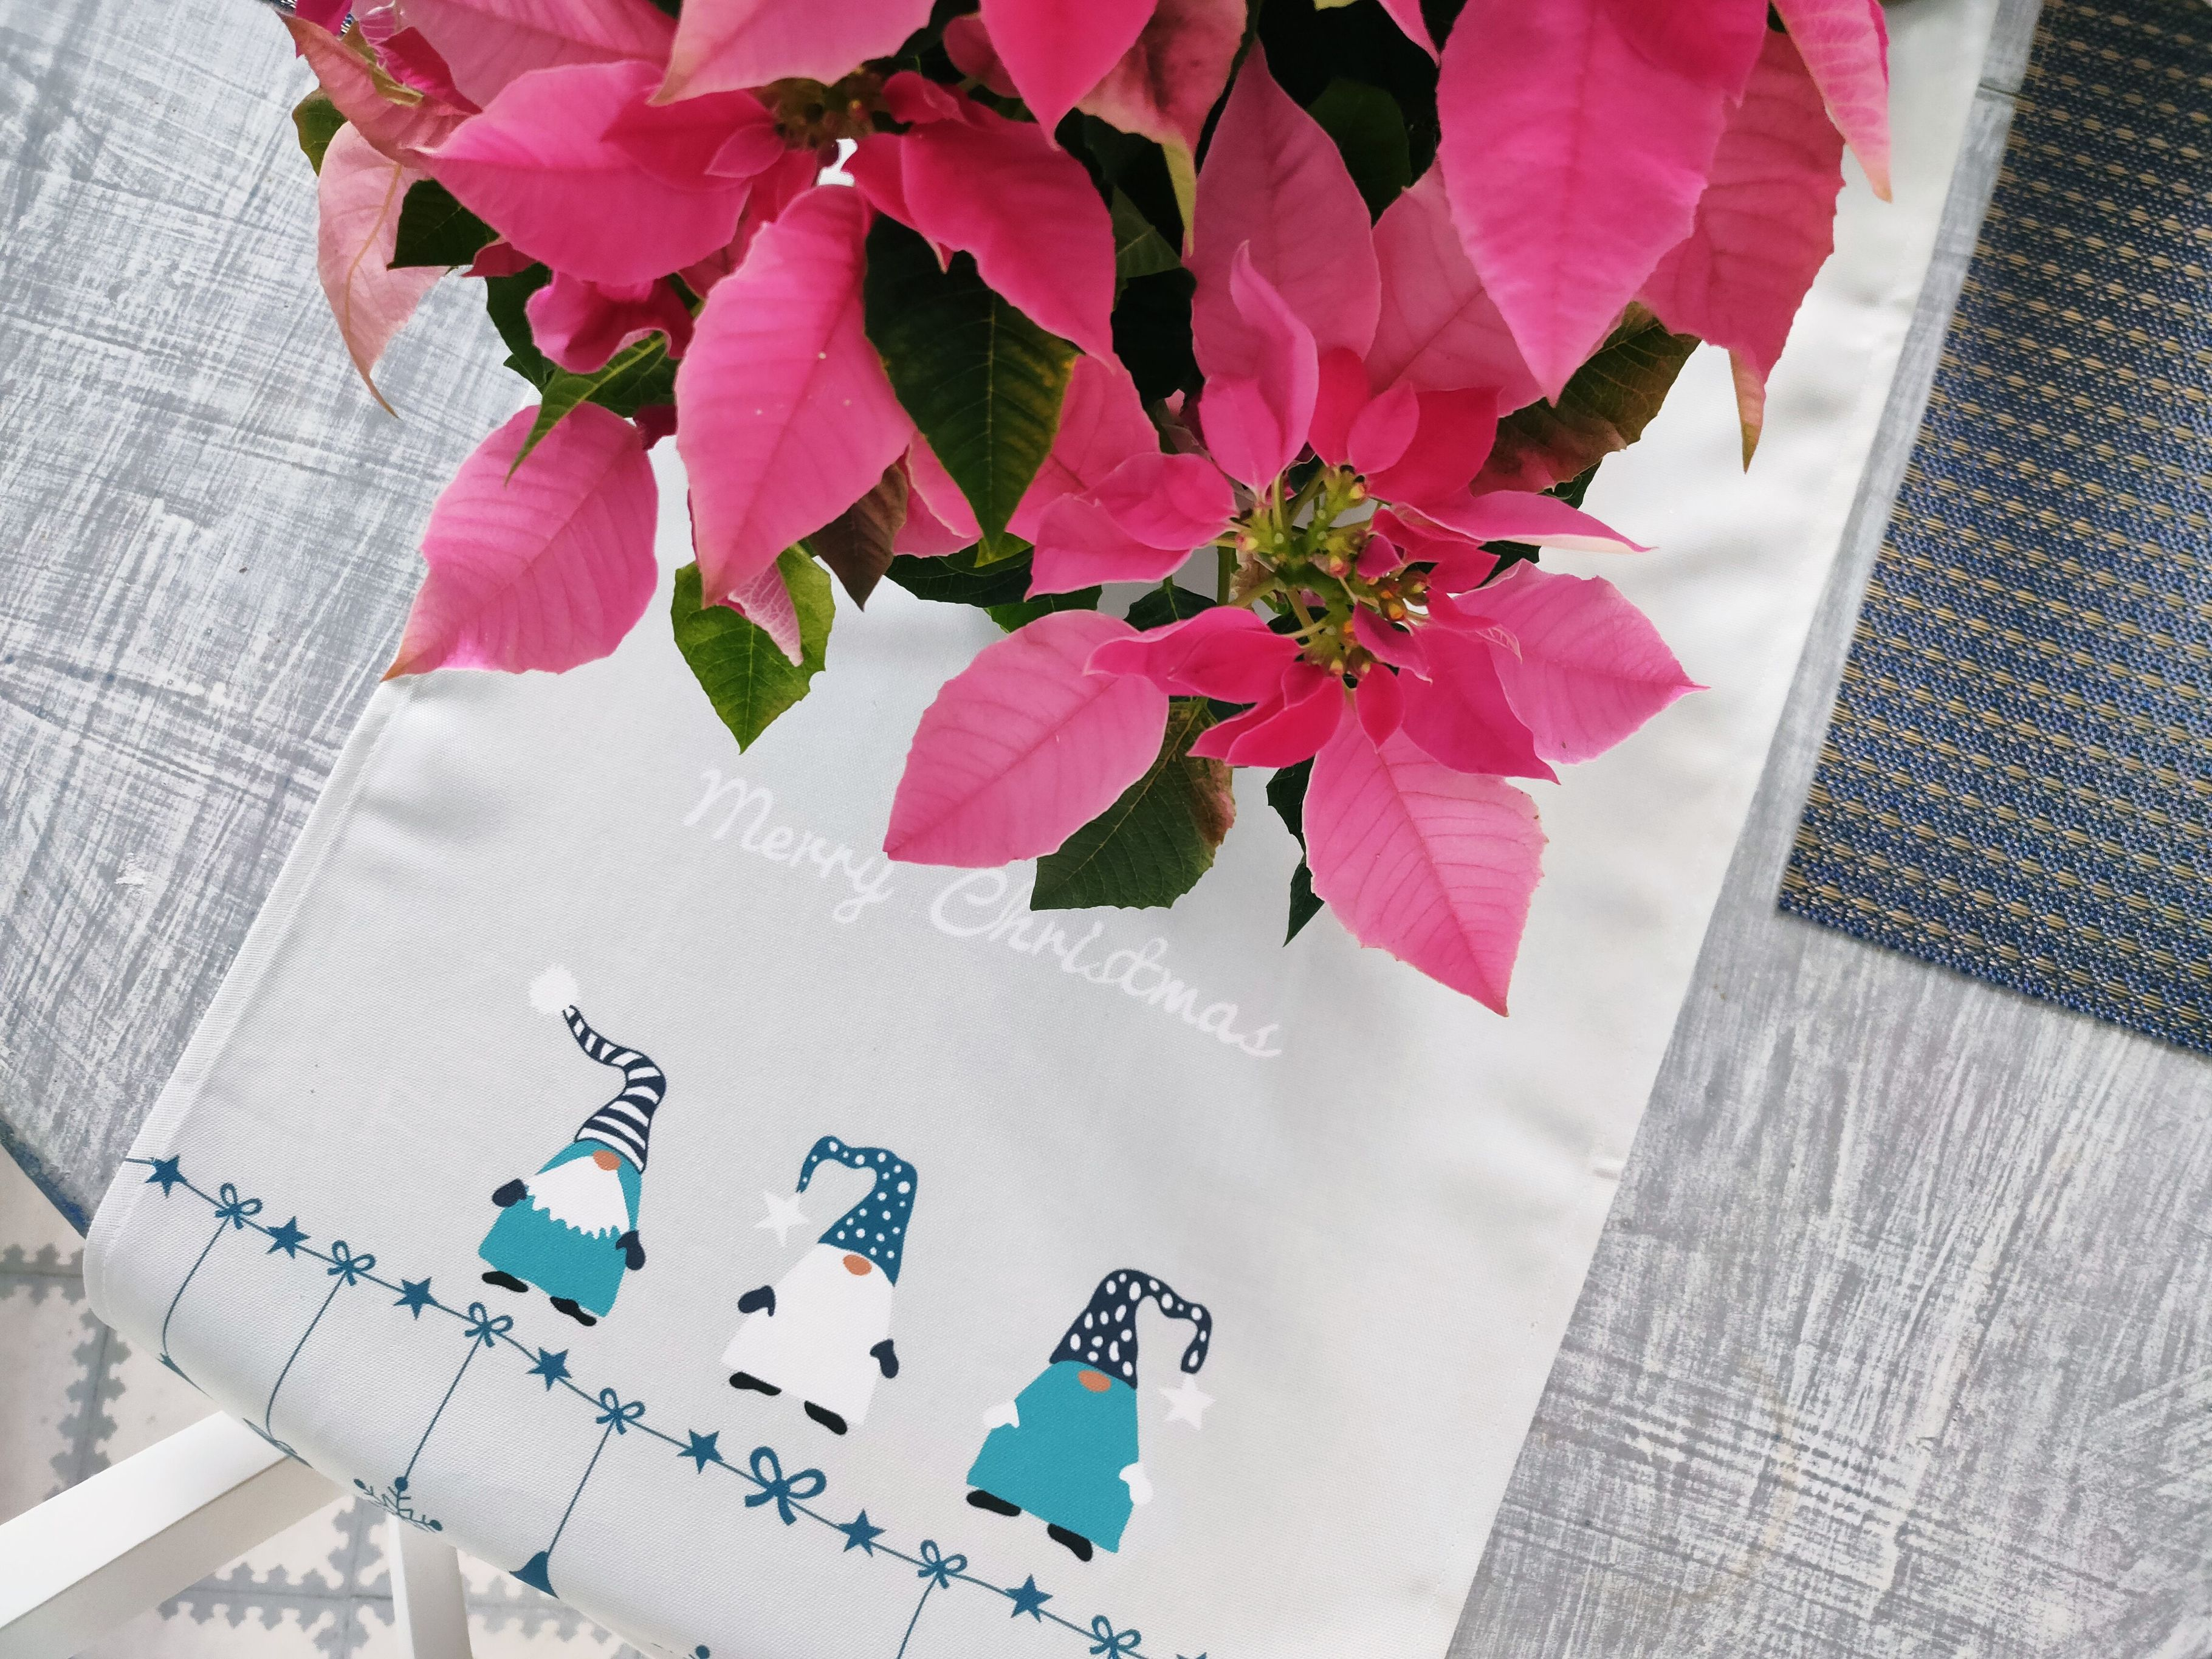 Christmas table runner with poinsettia